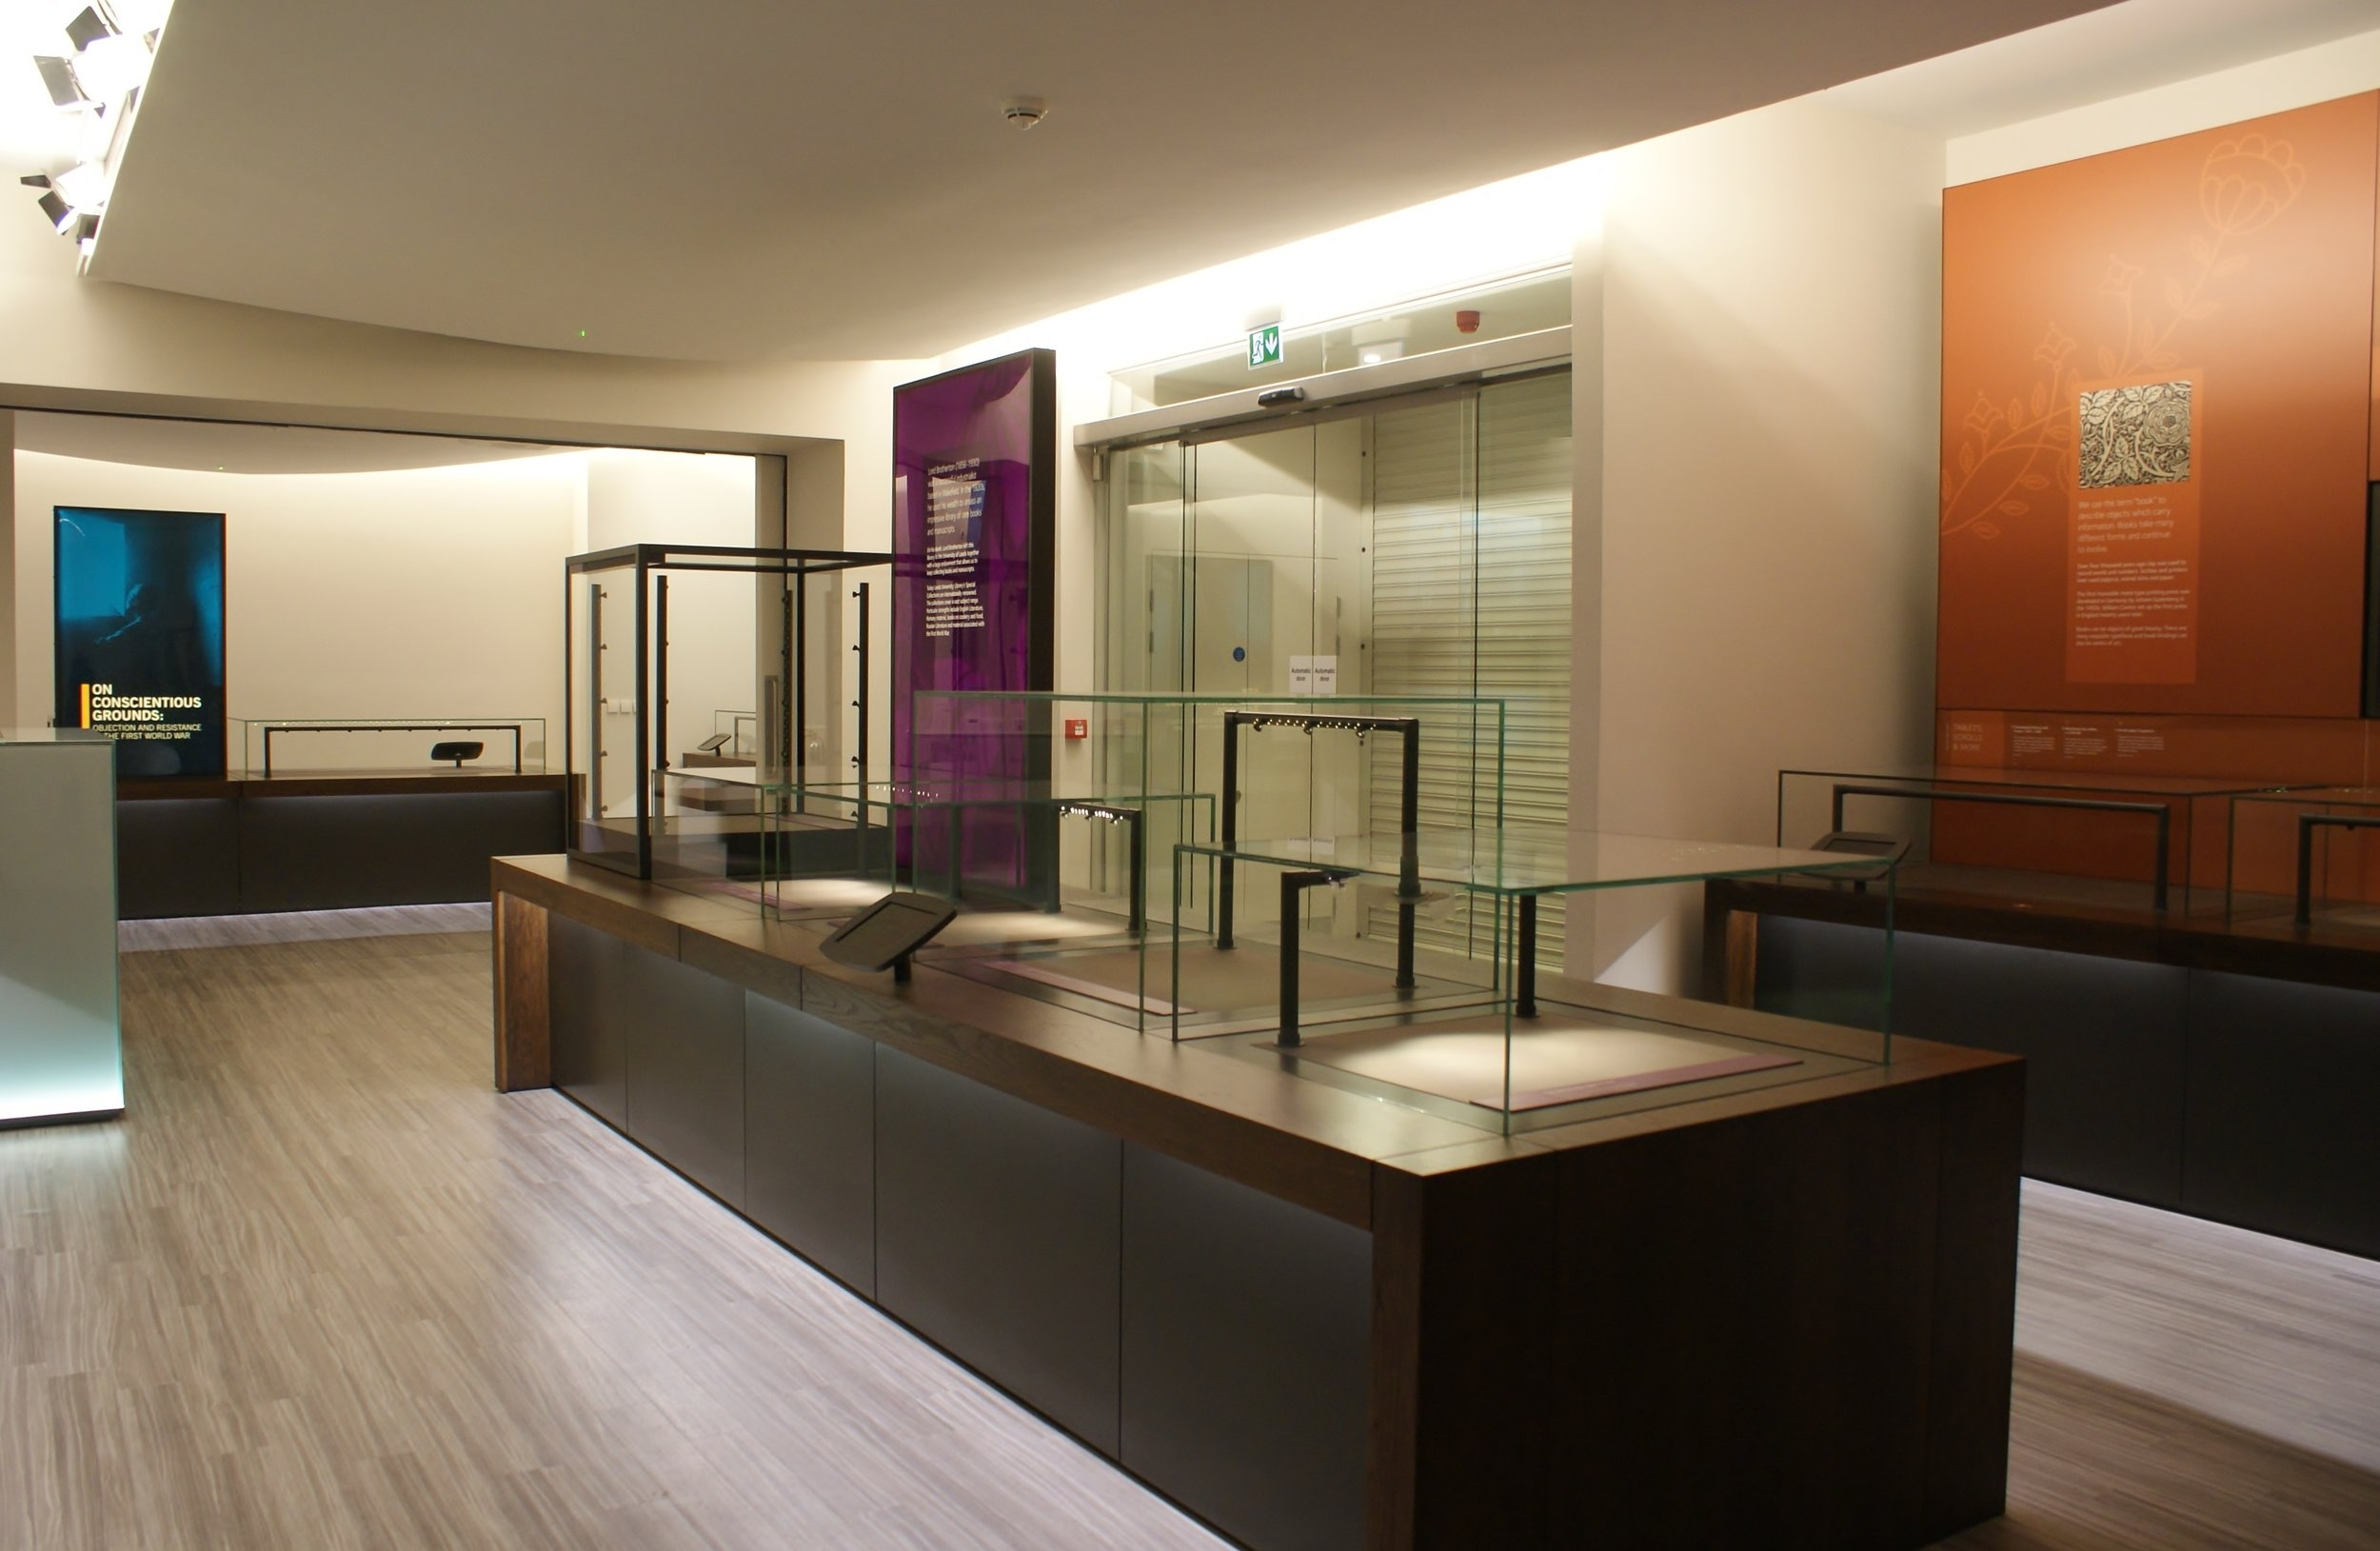 The Treasures of the Brotherton Gallery - Historical / Listed Buildings